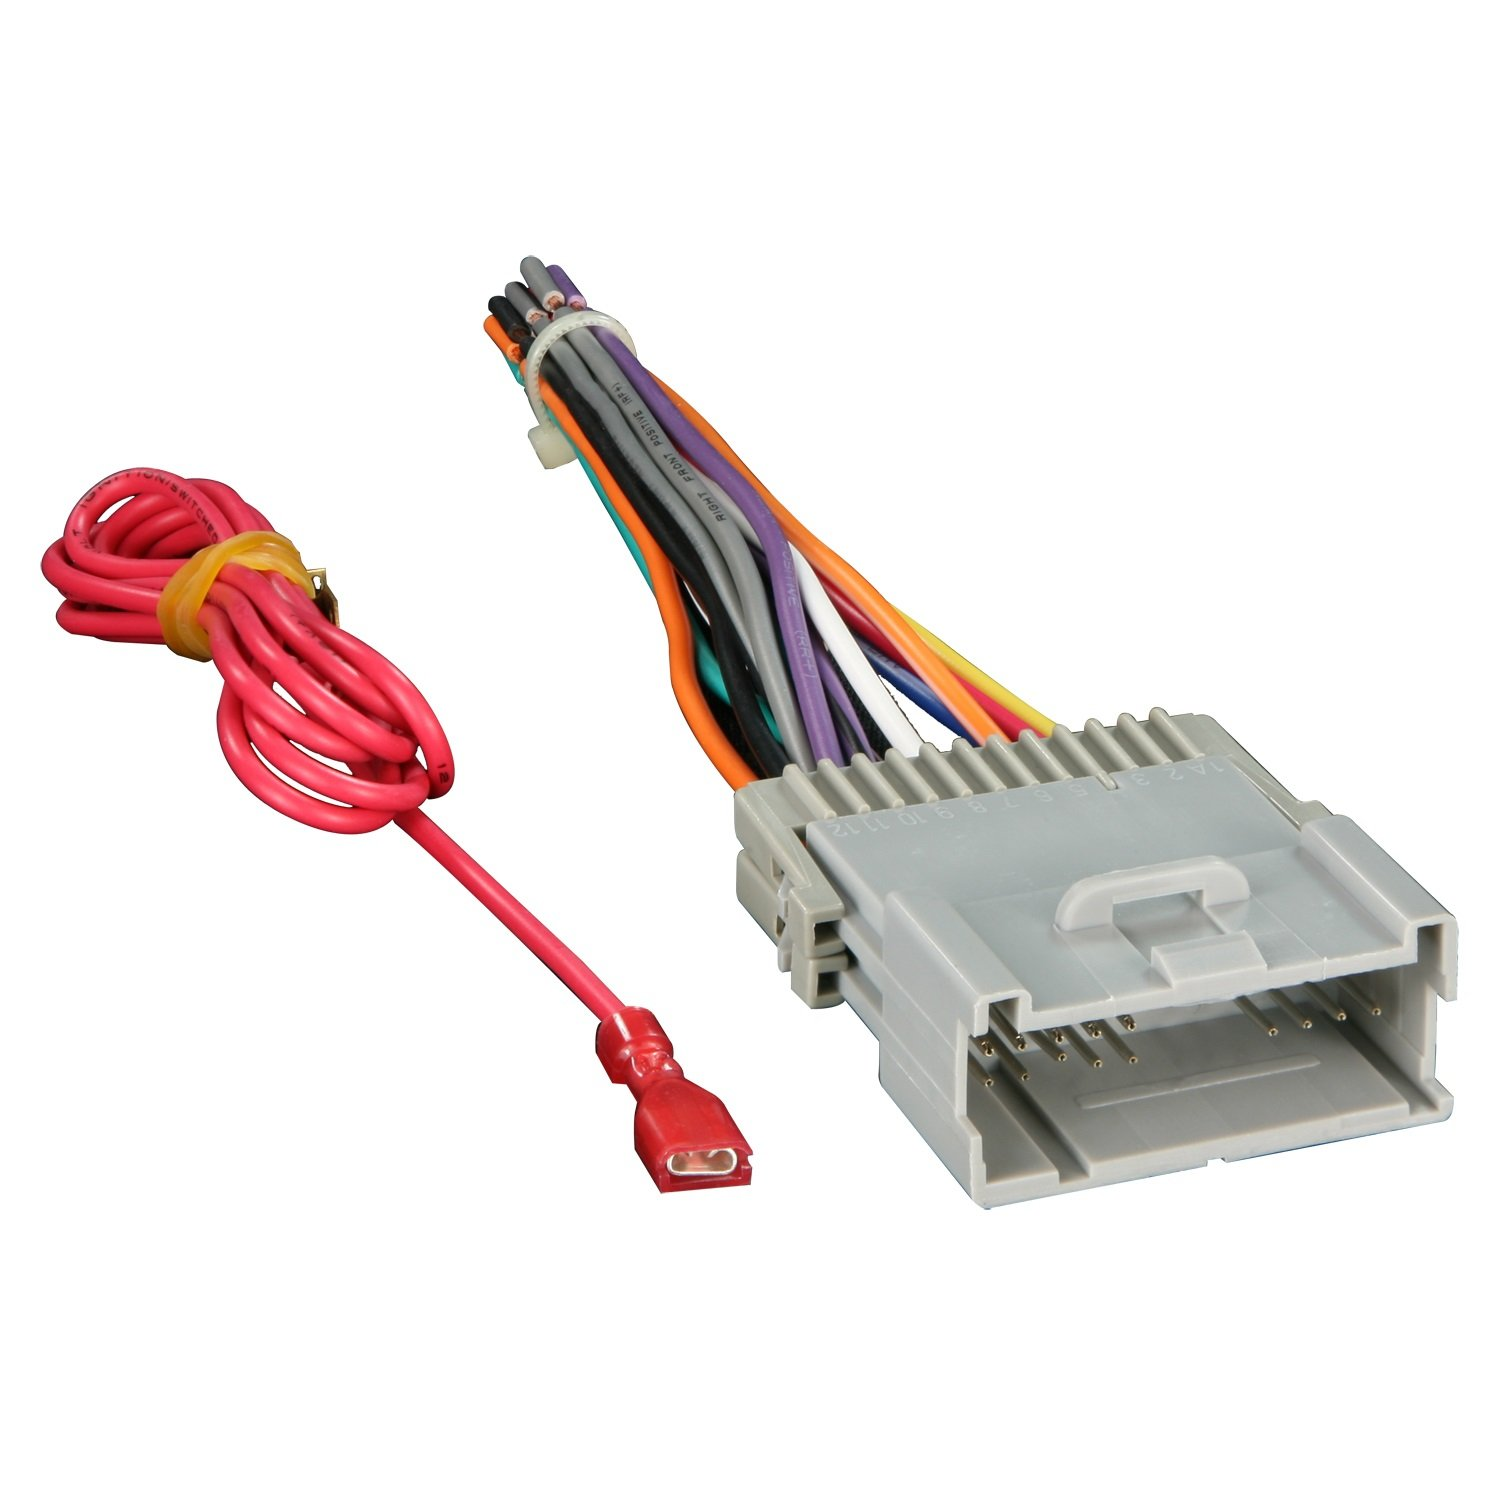 61eewxp9orL._SL1500_ amazon com metra 70 2003 radio wiring harness for gm 98 08 how to install wire harness car stereo at crackthecode.co